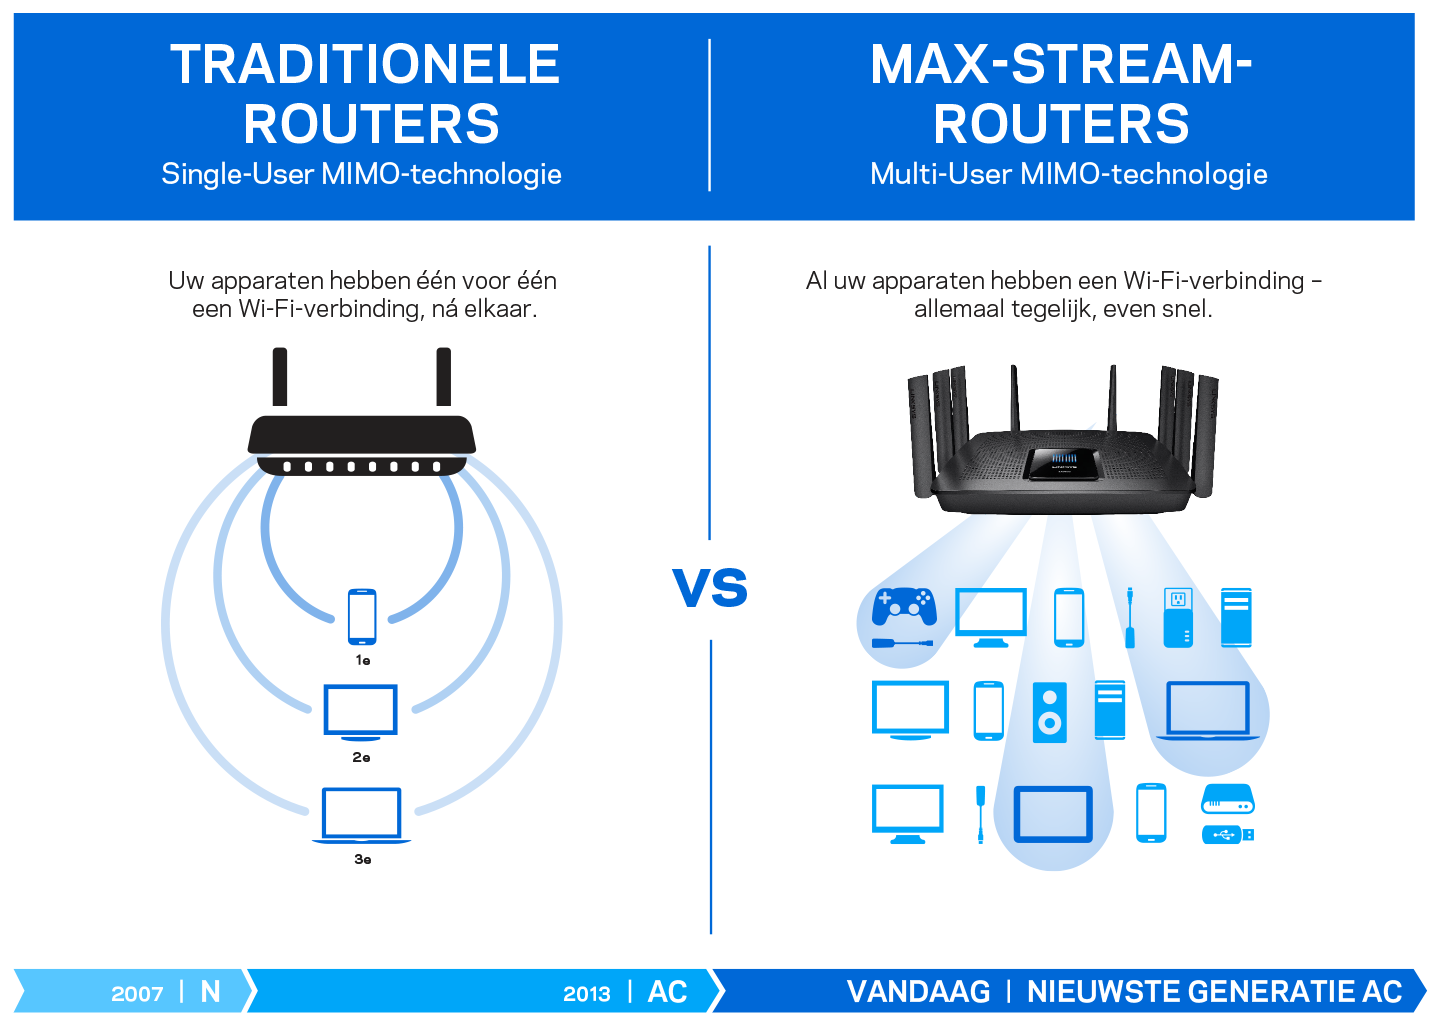 diagram comparing Max-Stream MU-MIMO and Tradtional Routers